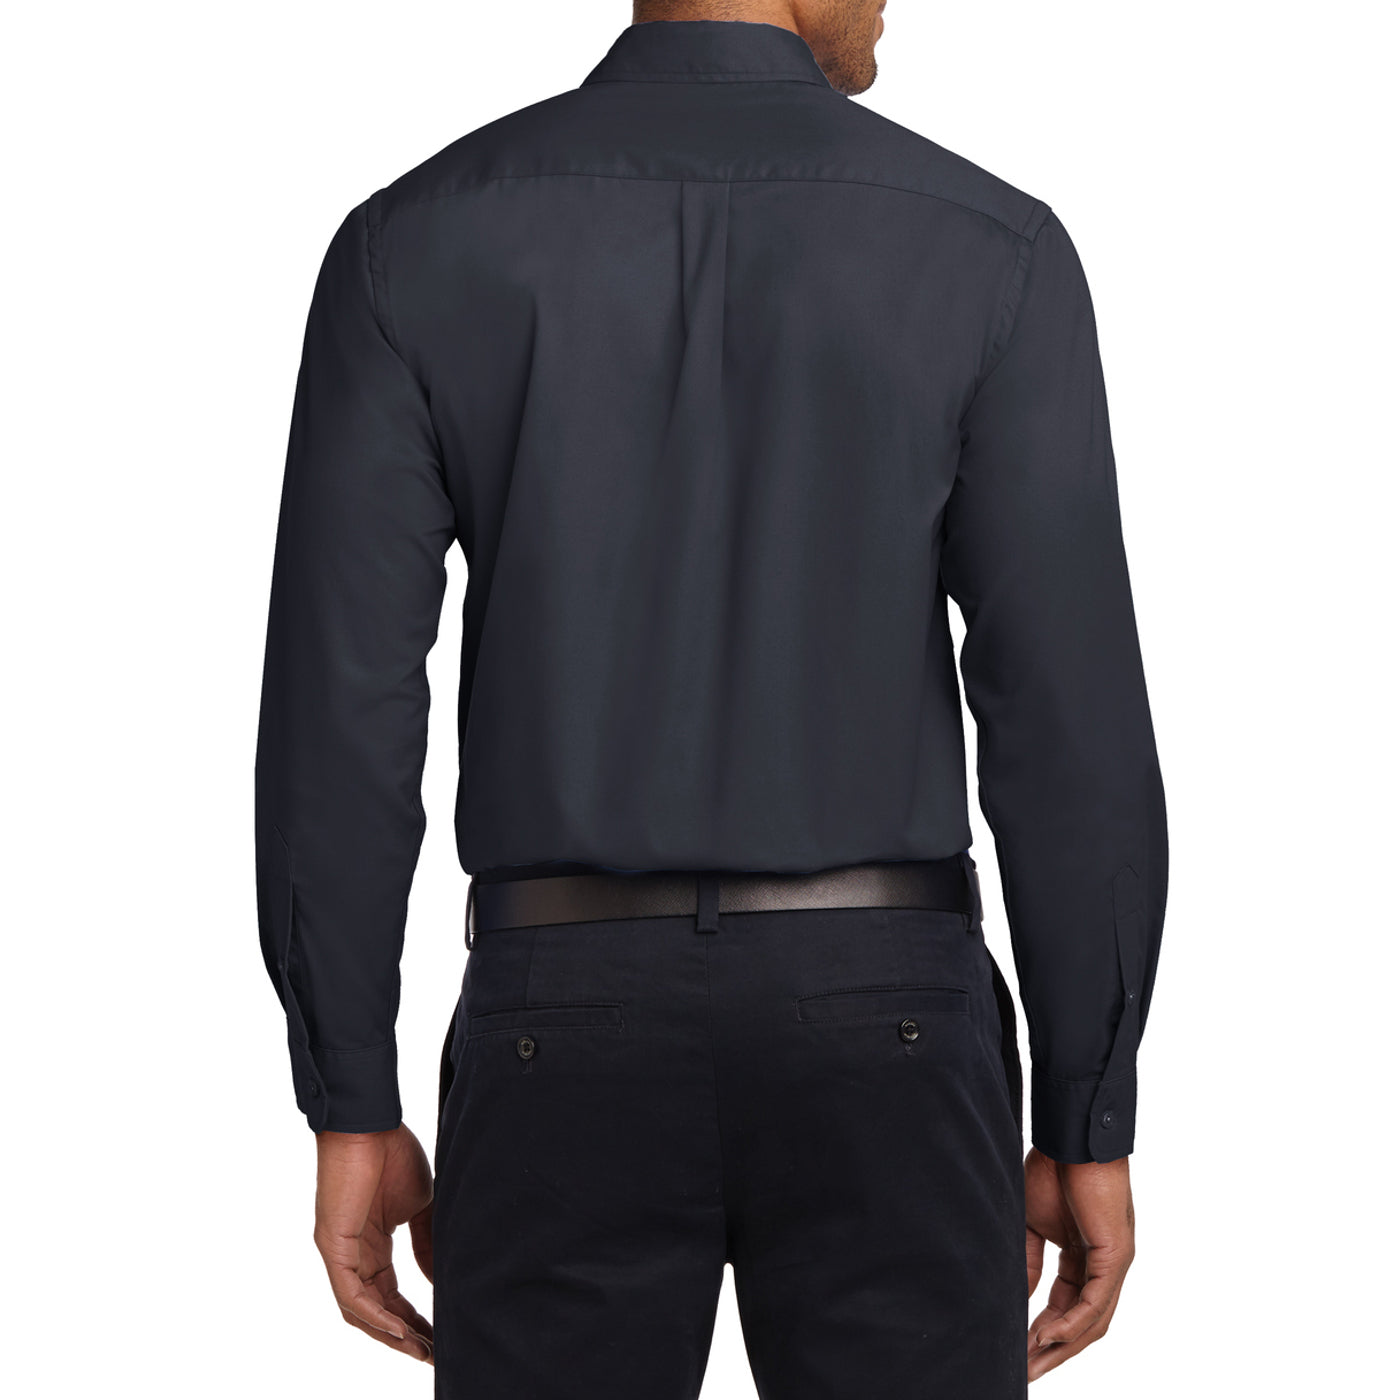 Men's Long Sleeve Easy Care Shirt - Classic Navy/ Light Stone - Back